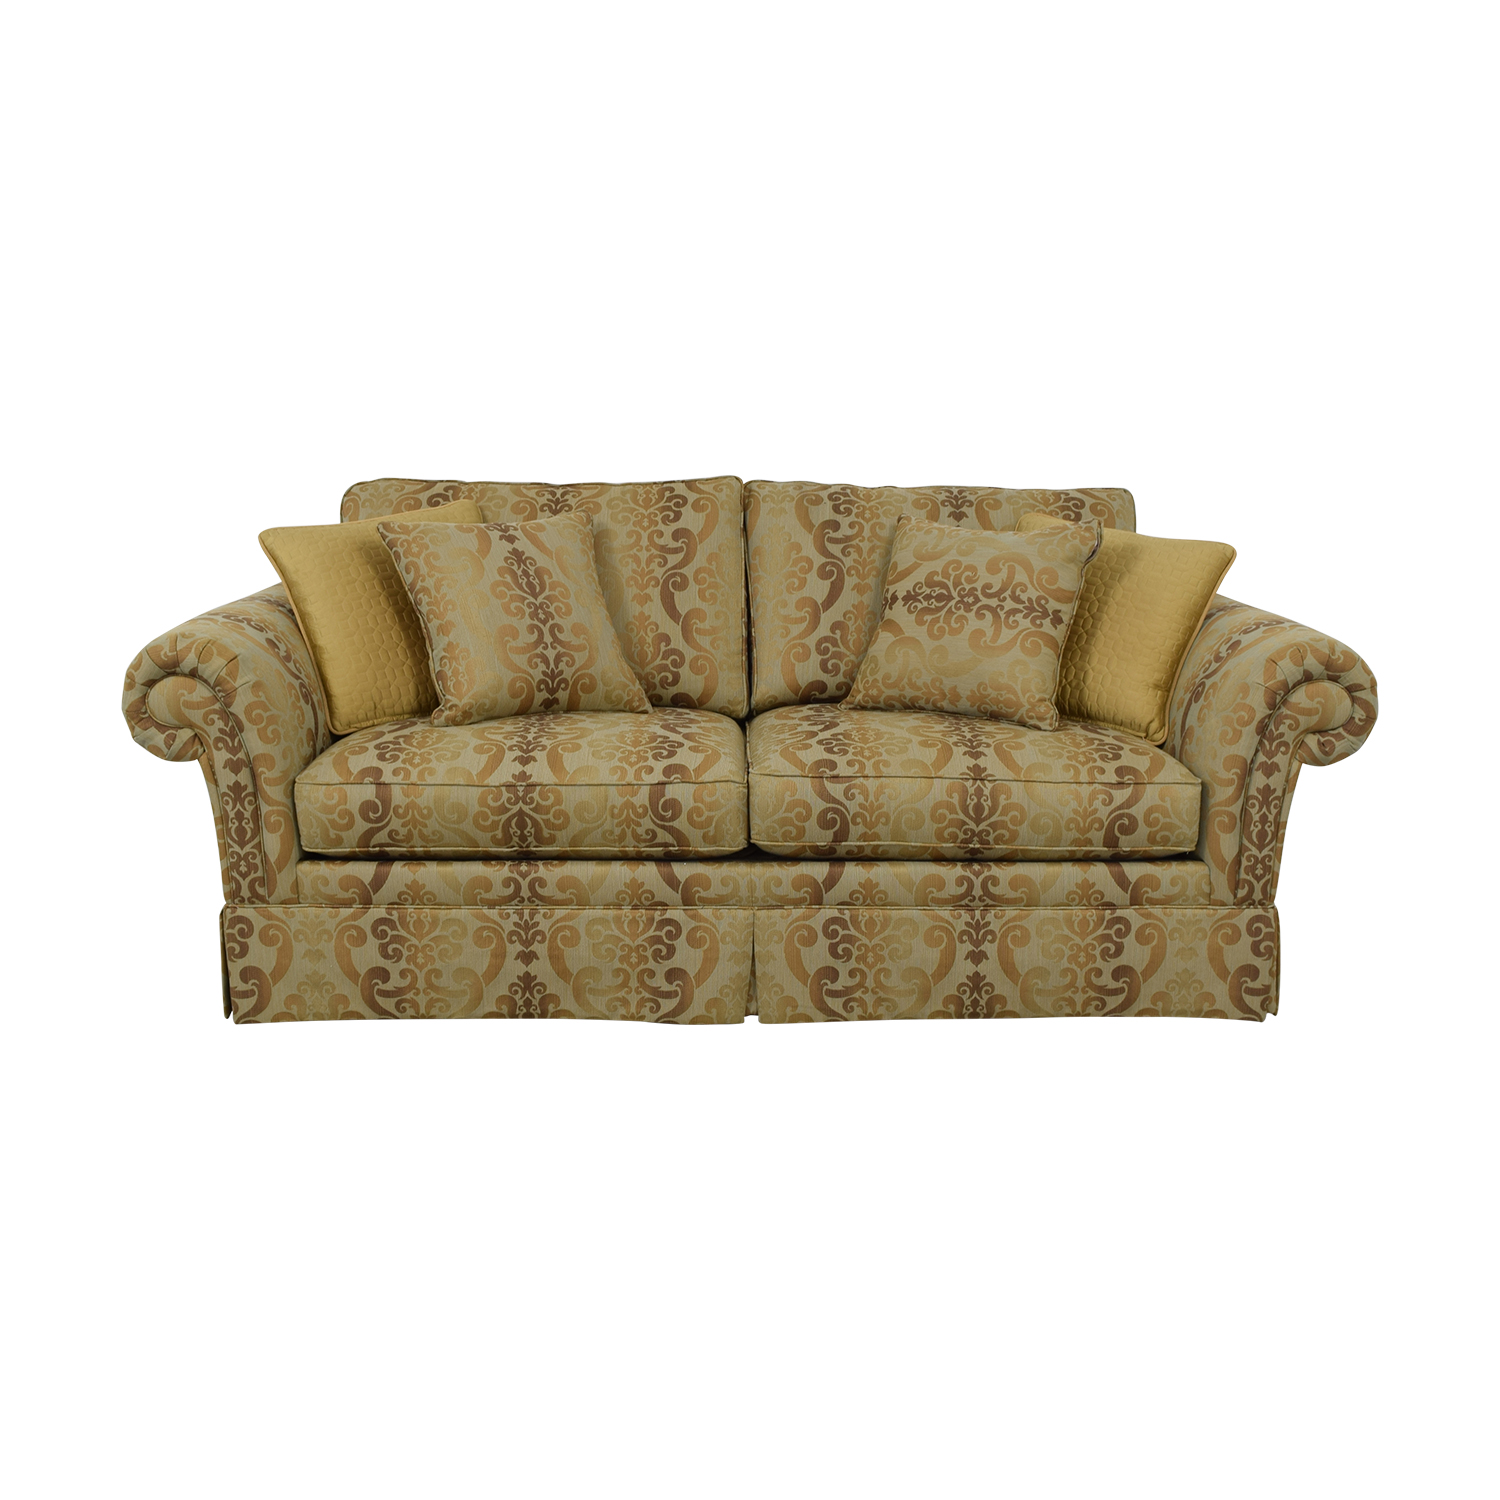 Ethan Allen Ethan Allen Fabric Sofa Multi-colored